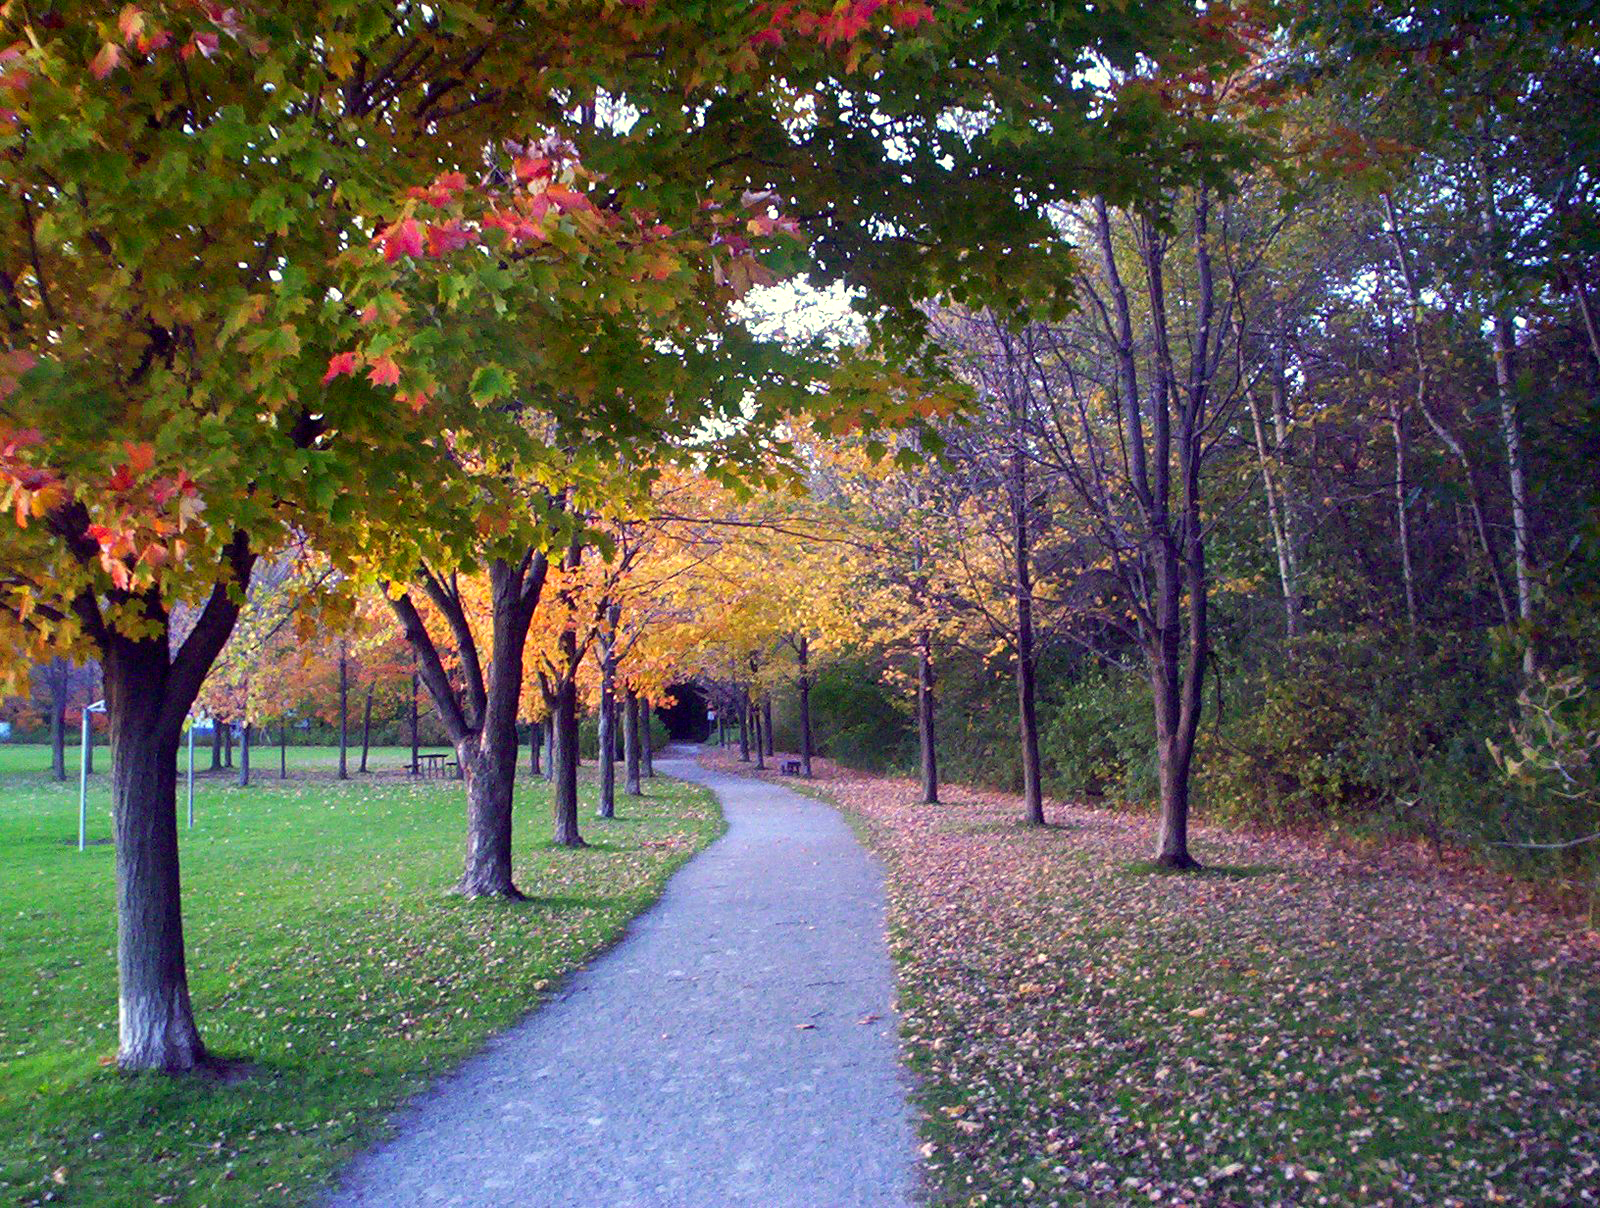 Fitness trail of Sheppard's Bush in October 2006.